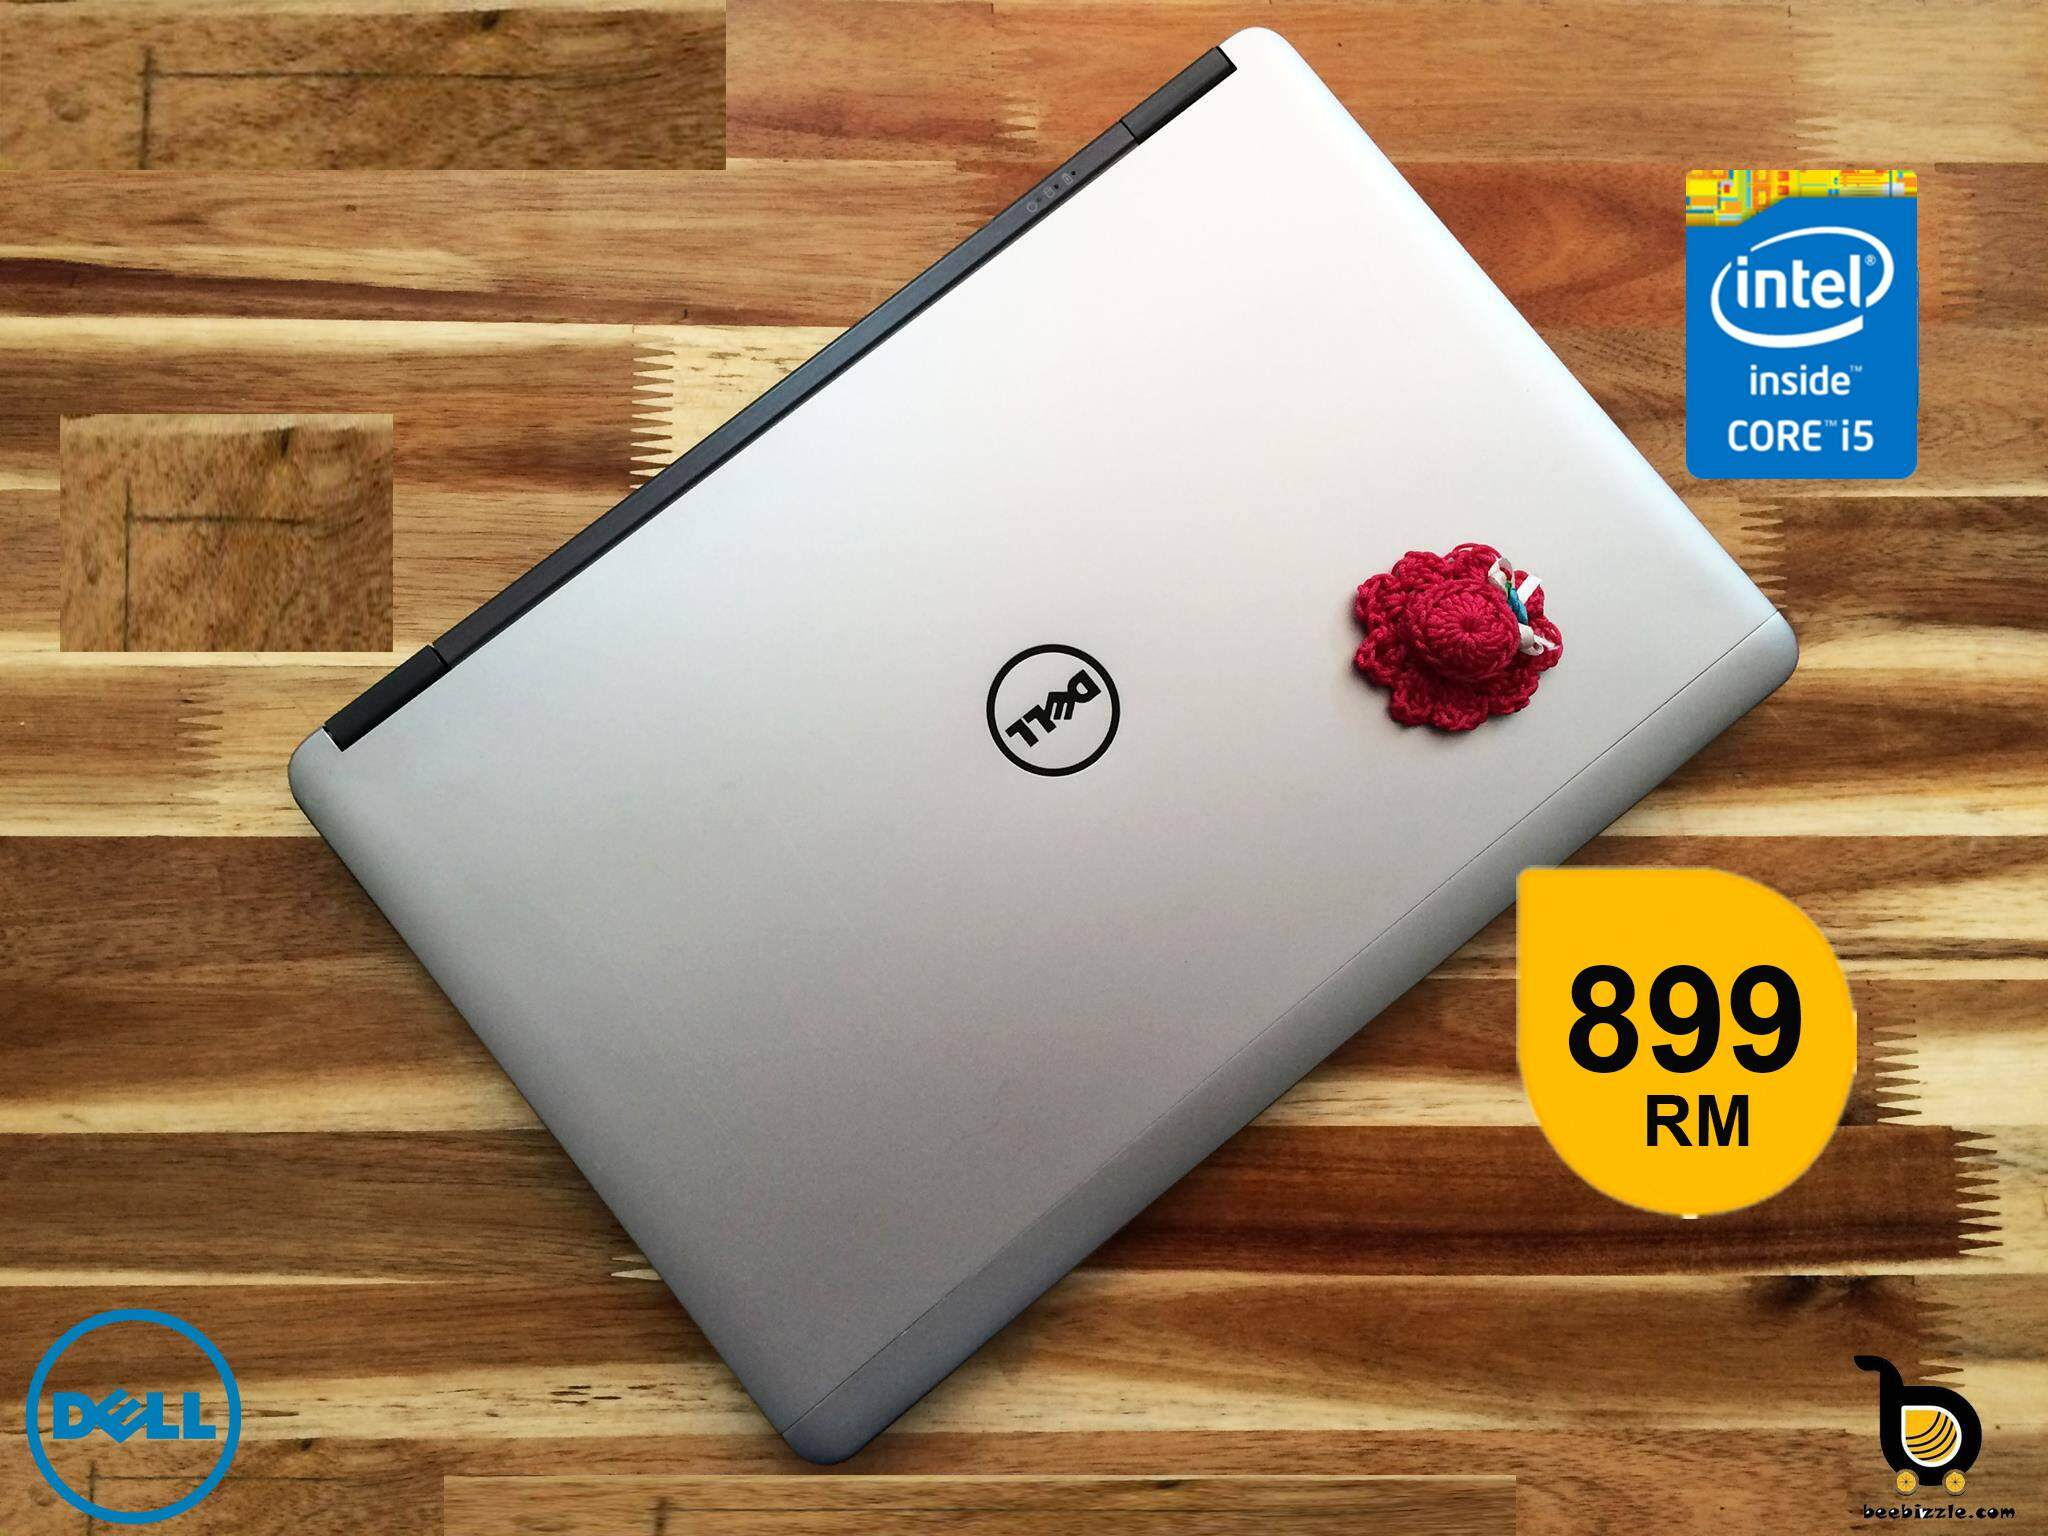 Dell Latitude E7240, Intel Core i5 Processor, 4GB RAM, 128GB SSD, 12.5 Inch Screen, WLAN, Bluetooth, Web Camera, HD Graphics, Windows Malaysia